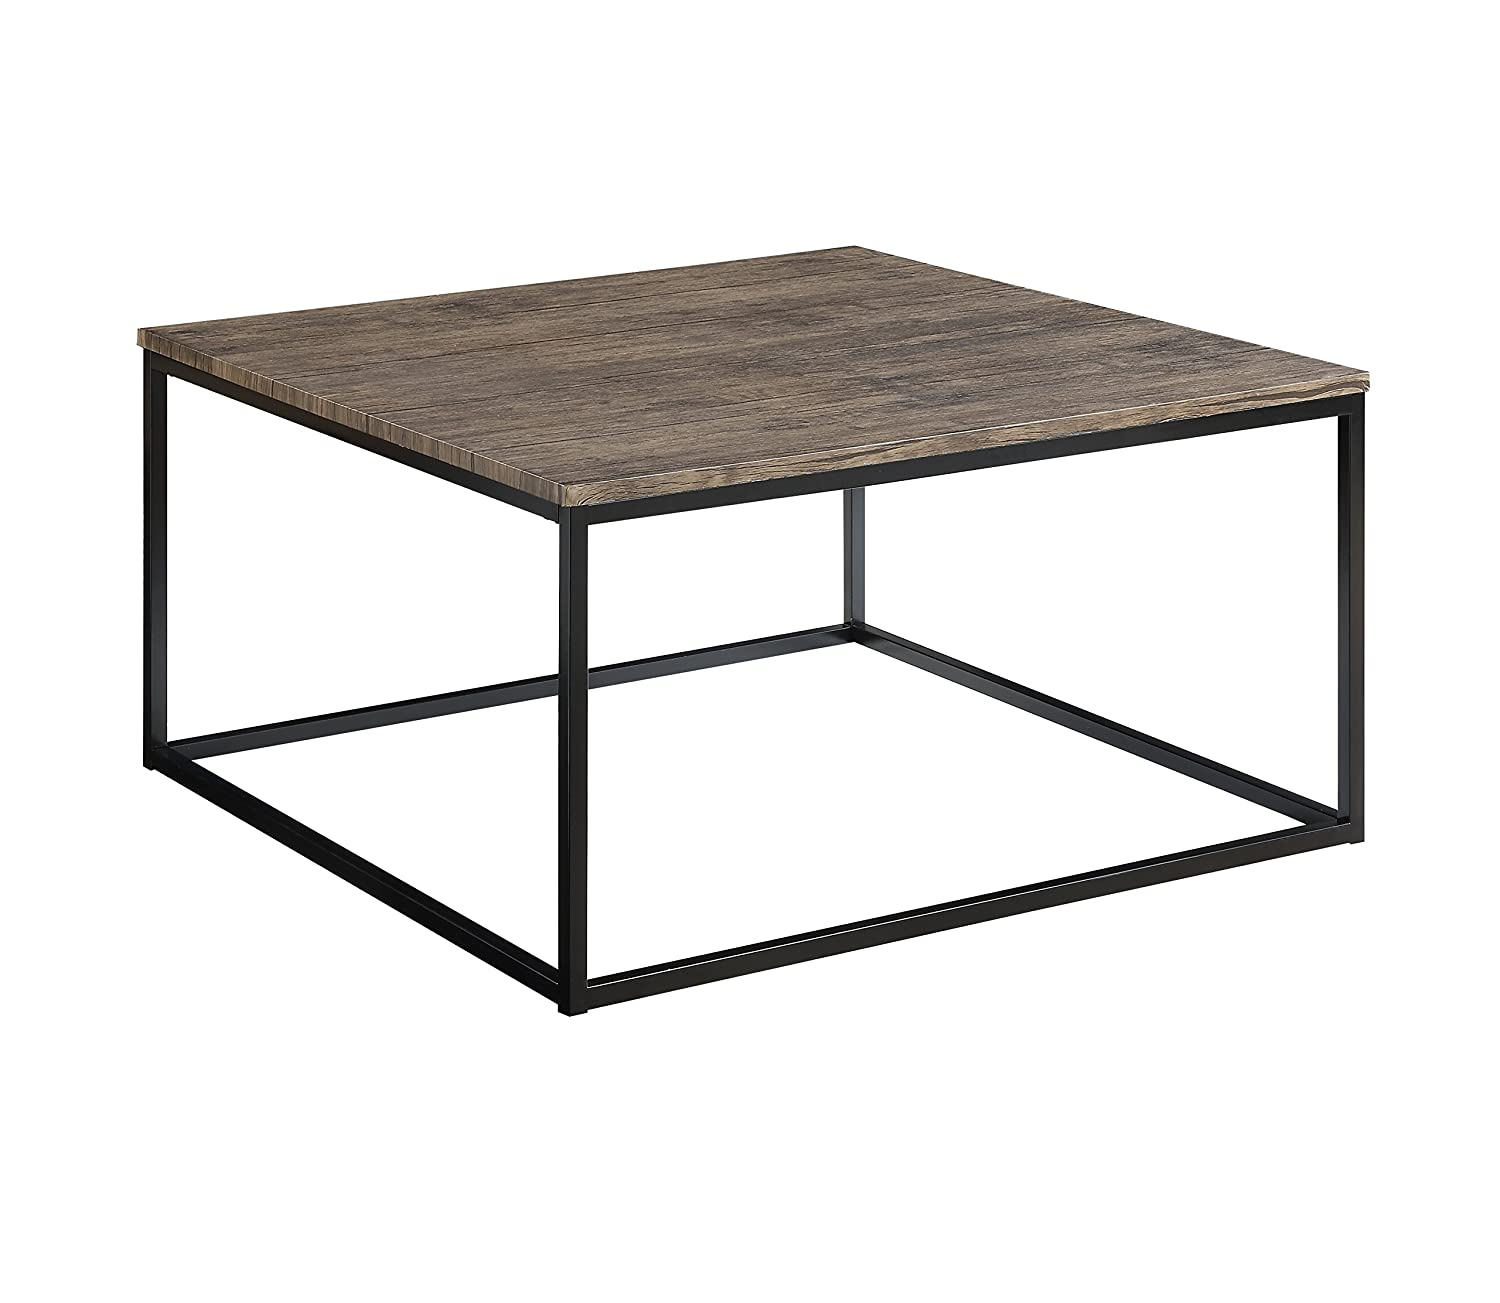 Image of Abington Lane - Contemporary Square Coffee Table - Modern Cocktail Table, Sofa Table for Living Room and Office - (Distressed Pecan) Home and Kitchen